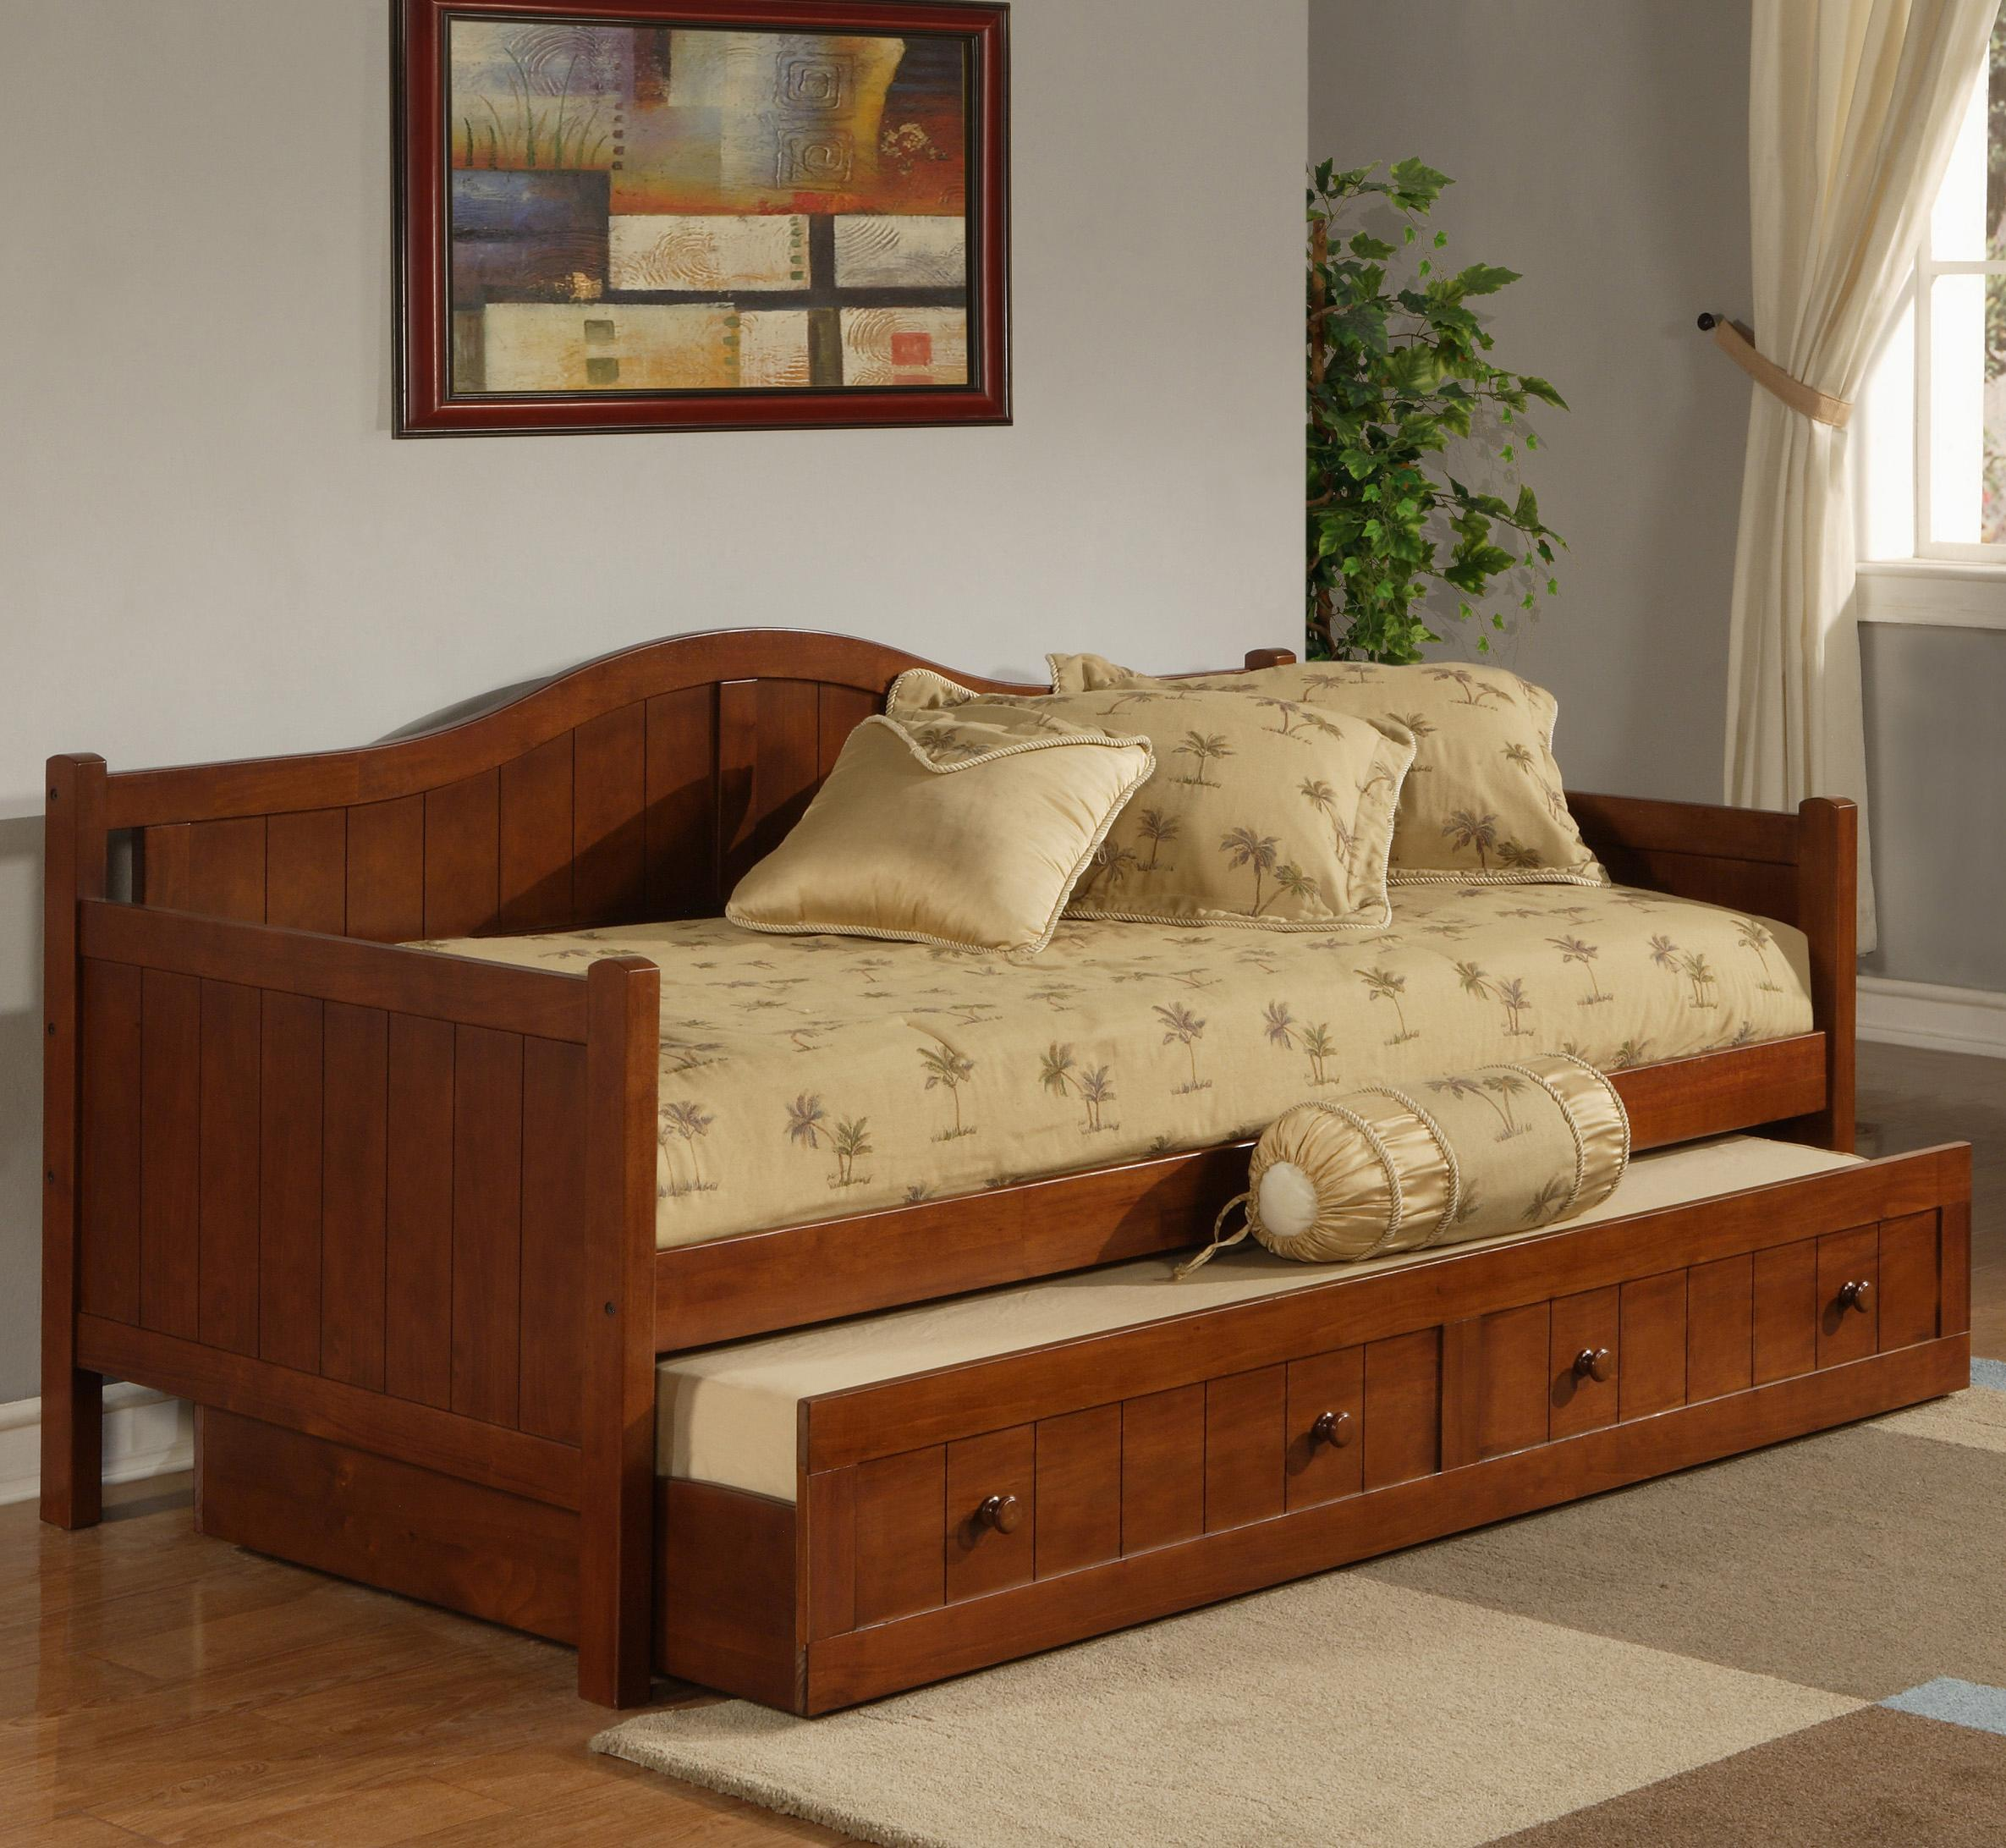 Hillsdale Daybeds Twin Staci Daybed with Trundle - Item Number: 1526DBT